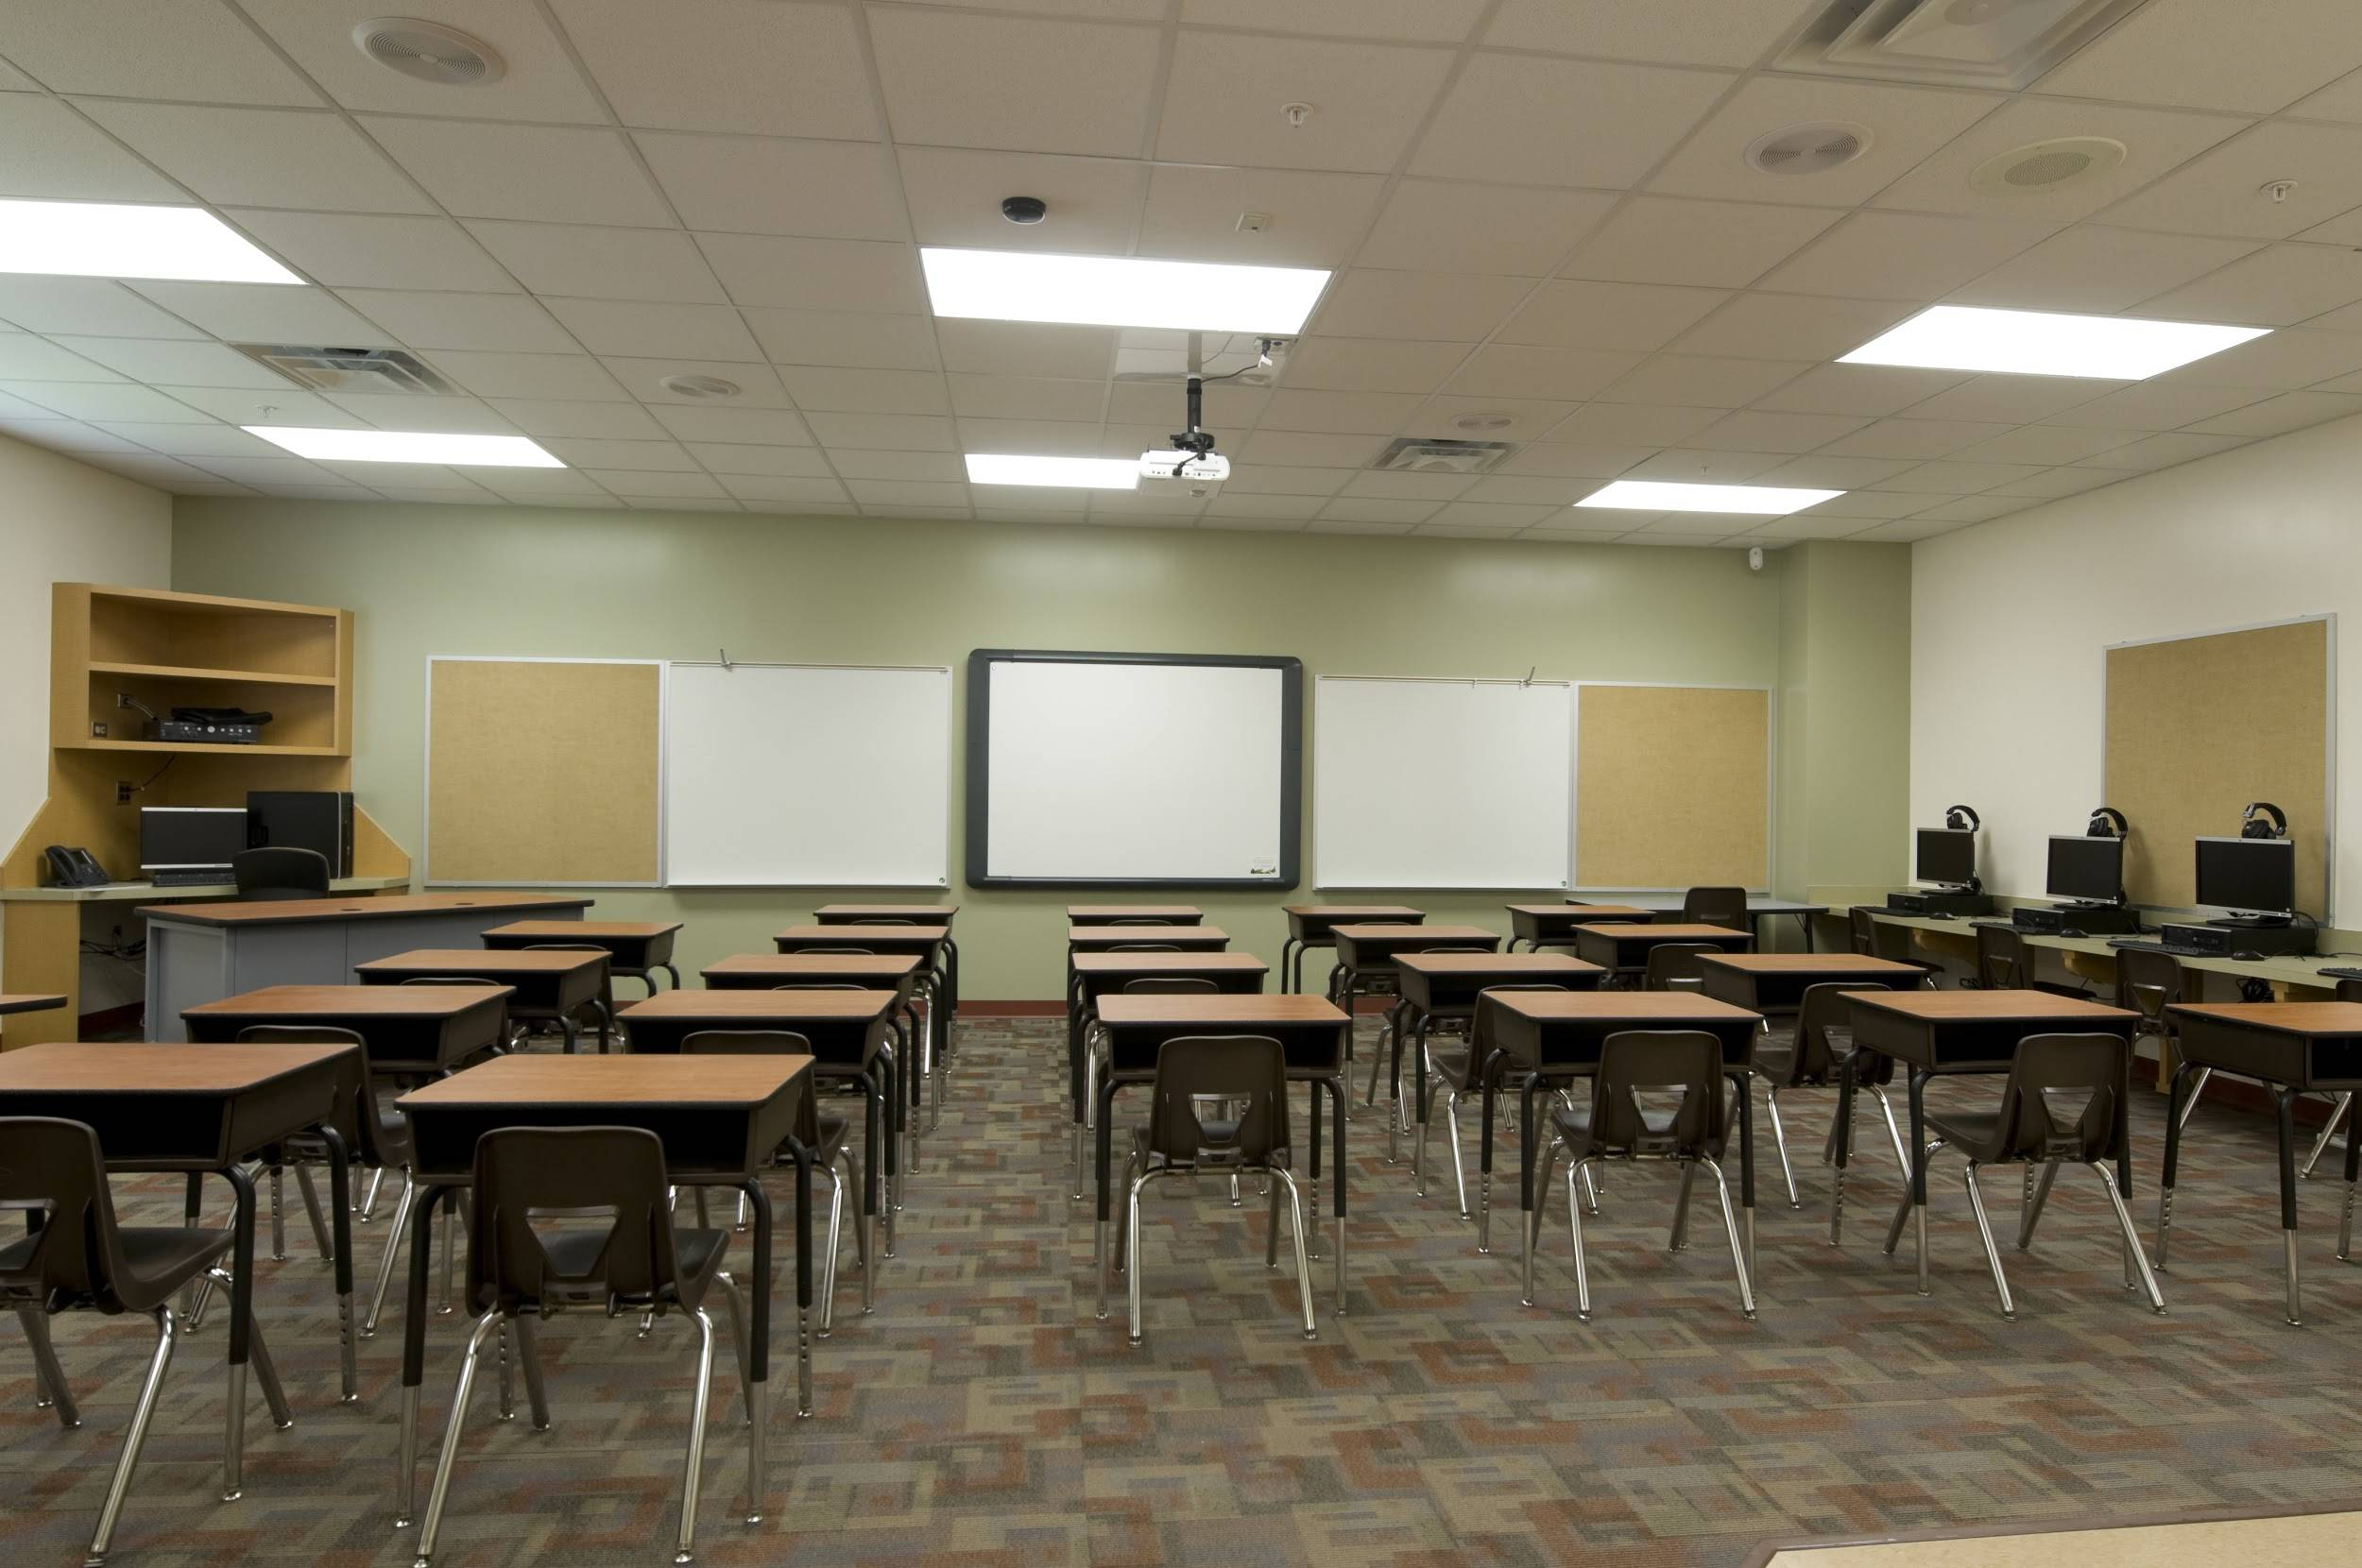 Does led lighting give an advantage to schools?